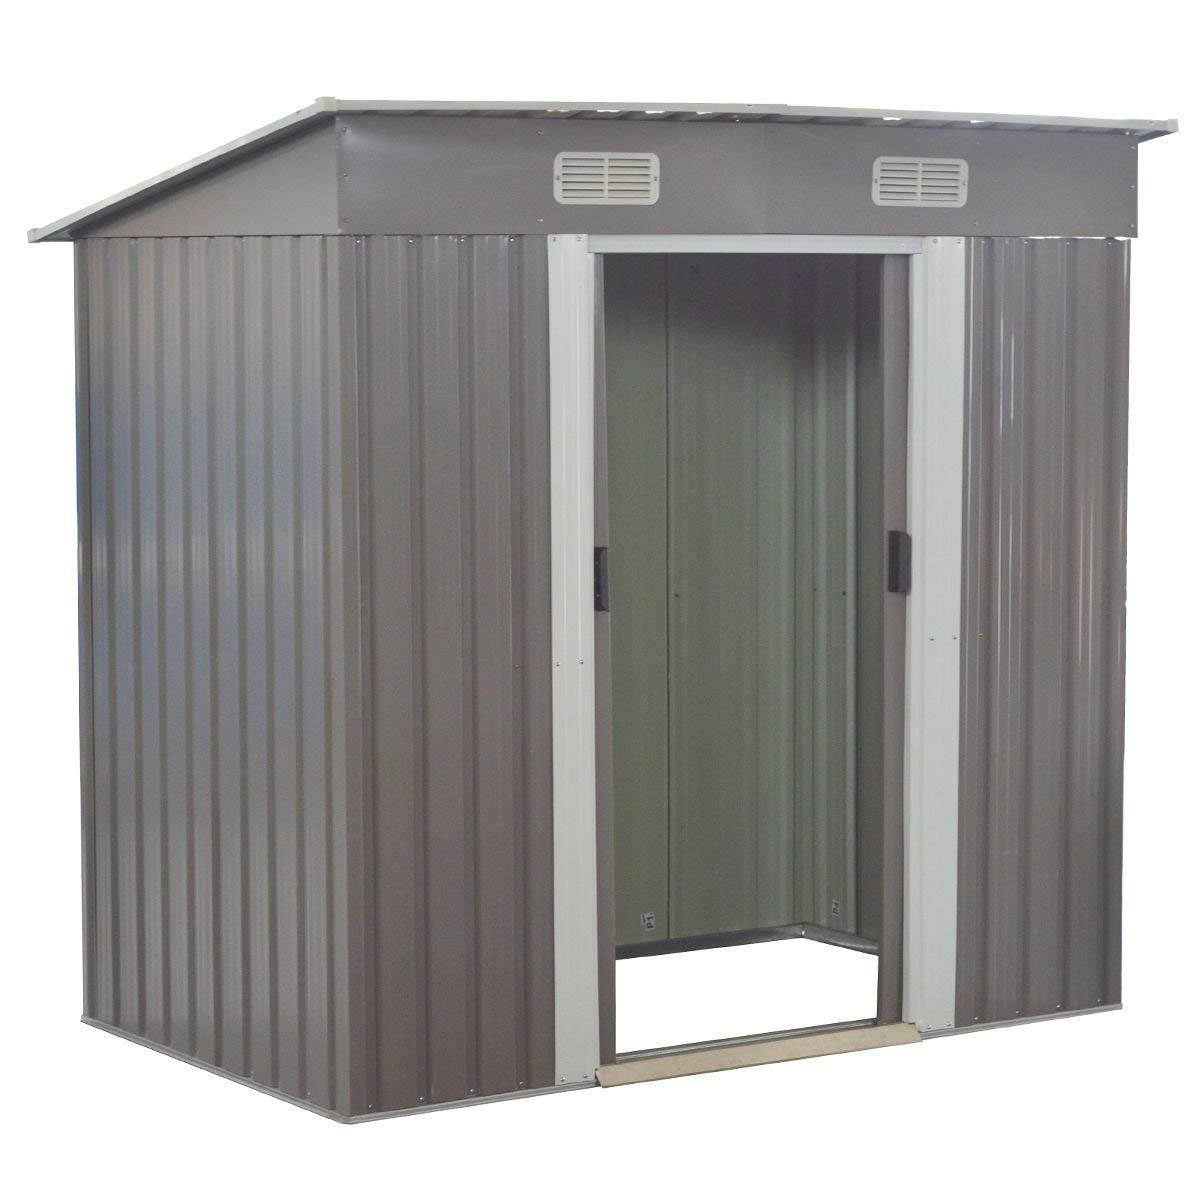 GoPlus Galvanized Steel Outdoor Garden Storage Shed